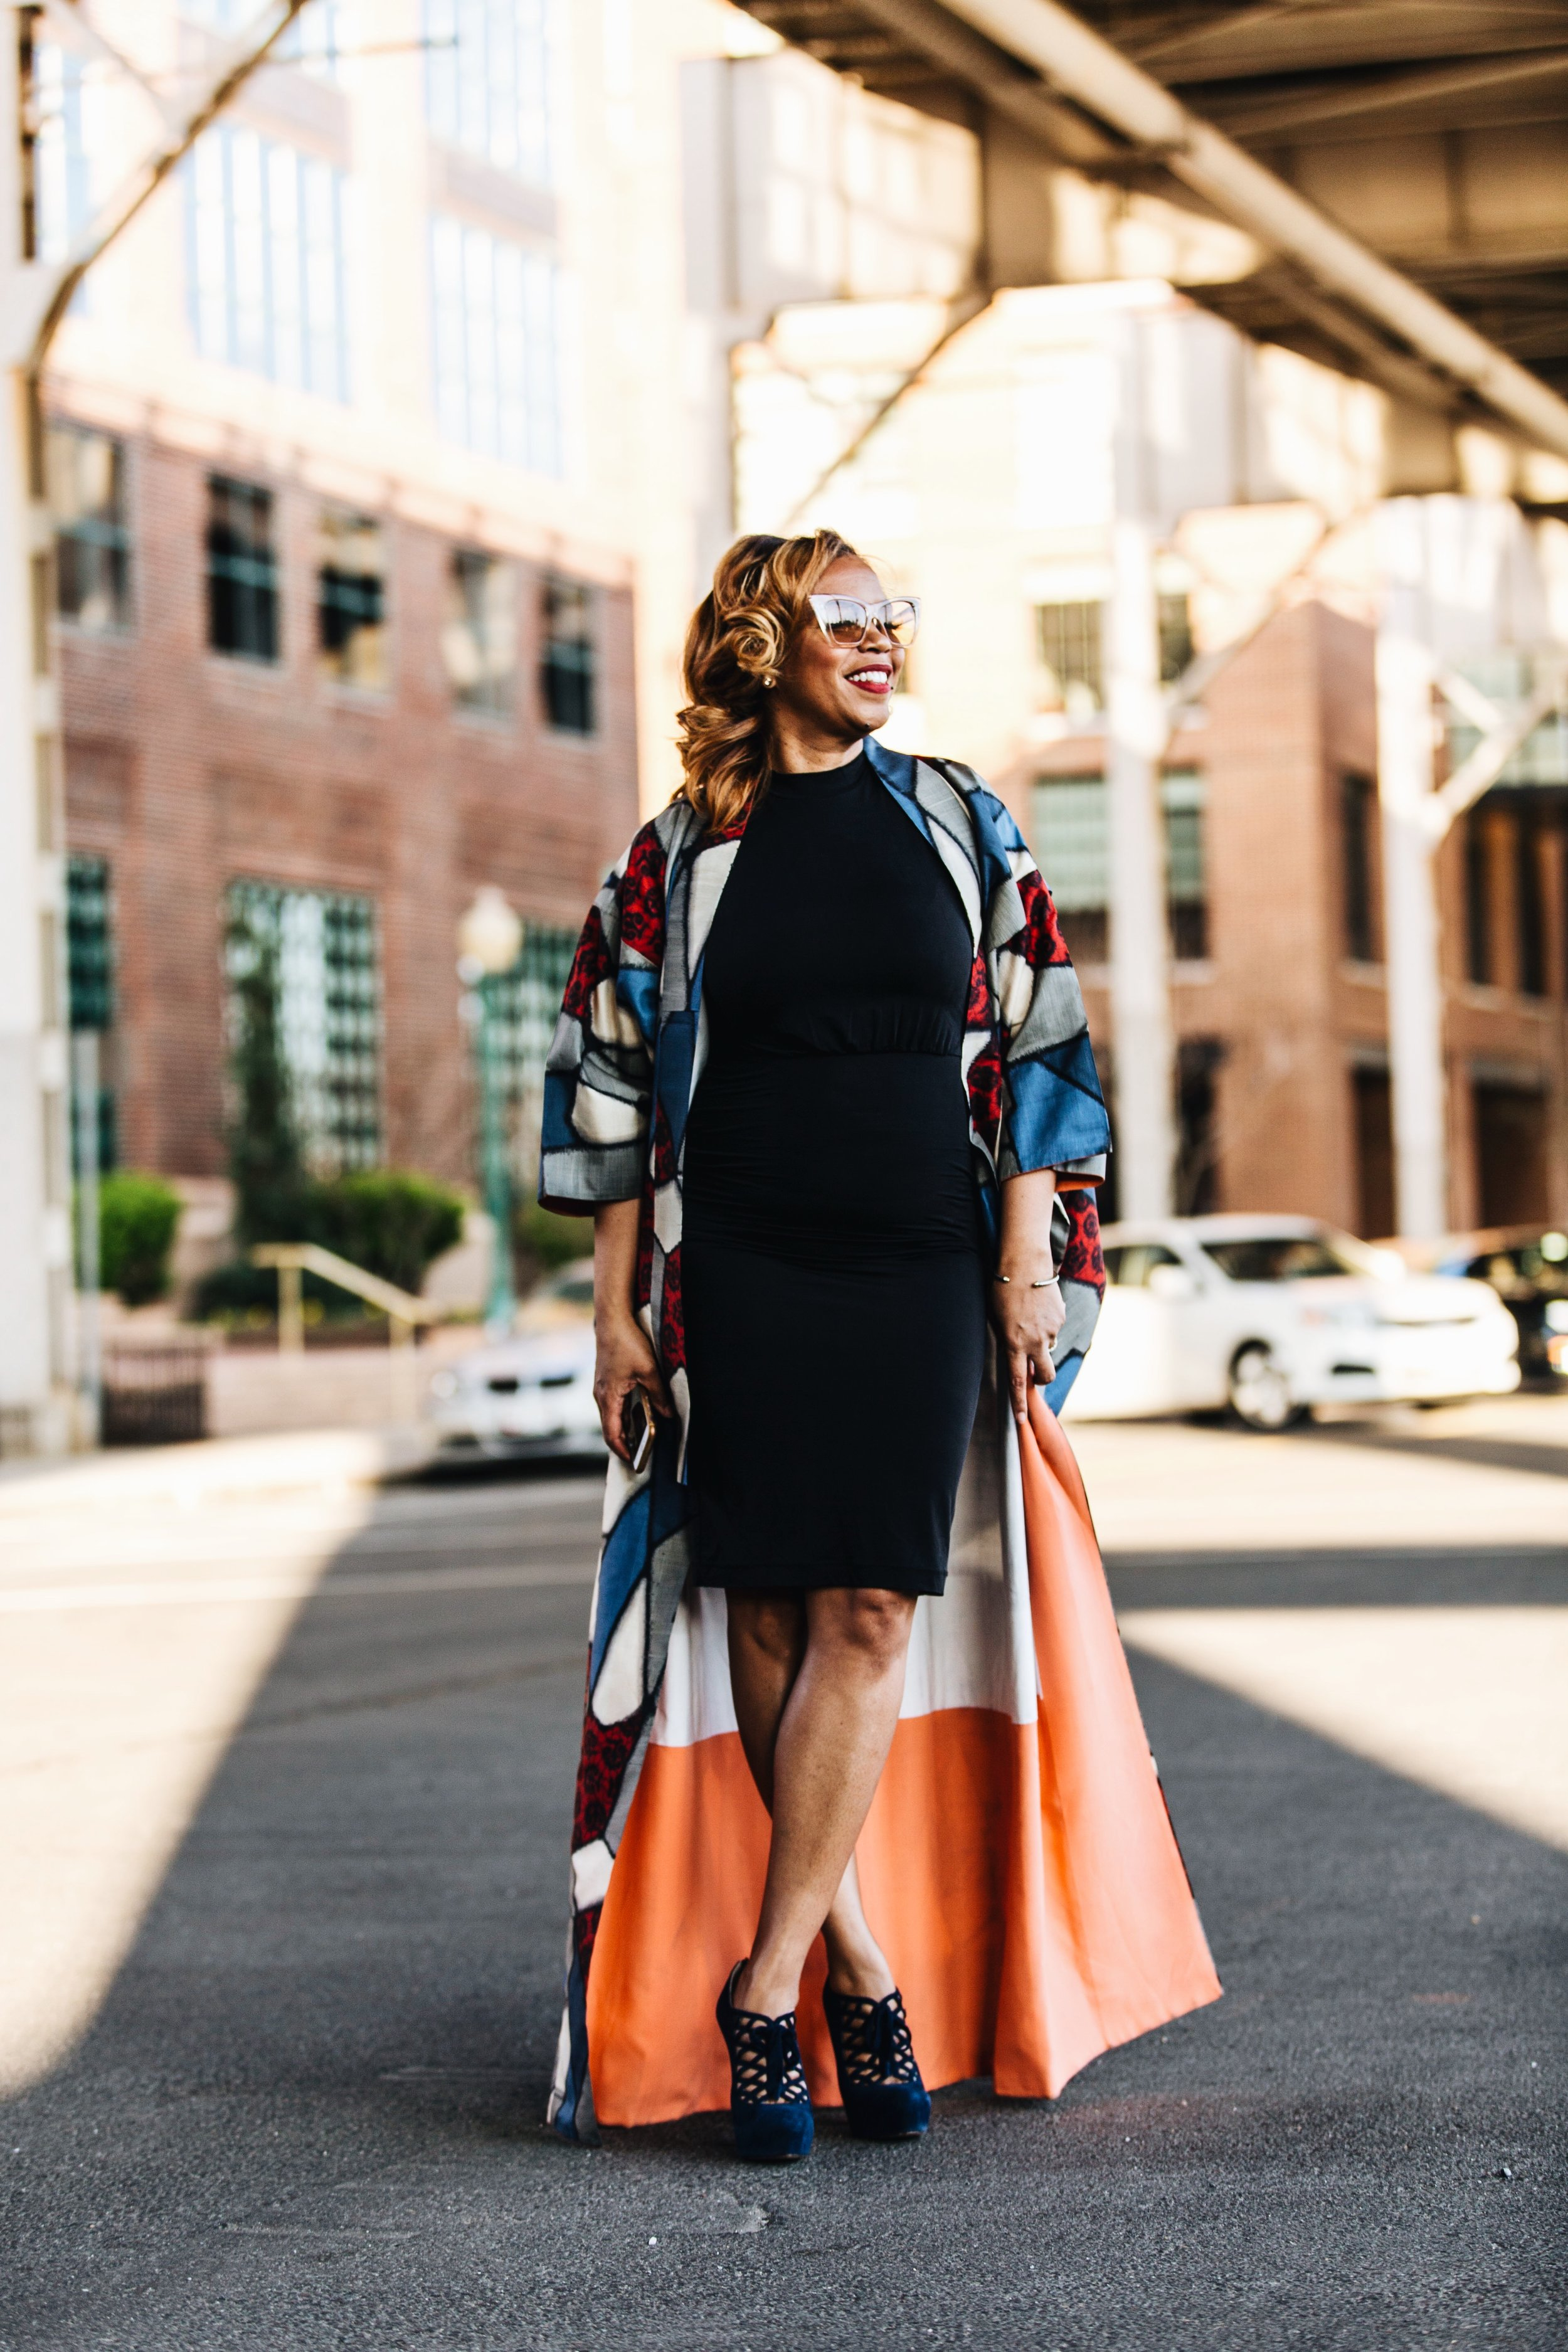 A image of personal stylist looksbybloom wearing sunglasses, black dress, multicolored patterned kimono captured by photographer The Creative Gentleman for Fashion Bomb Daily. This image was captured during the Conversations with Claire brunch event in Washington, D.C.